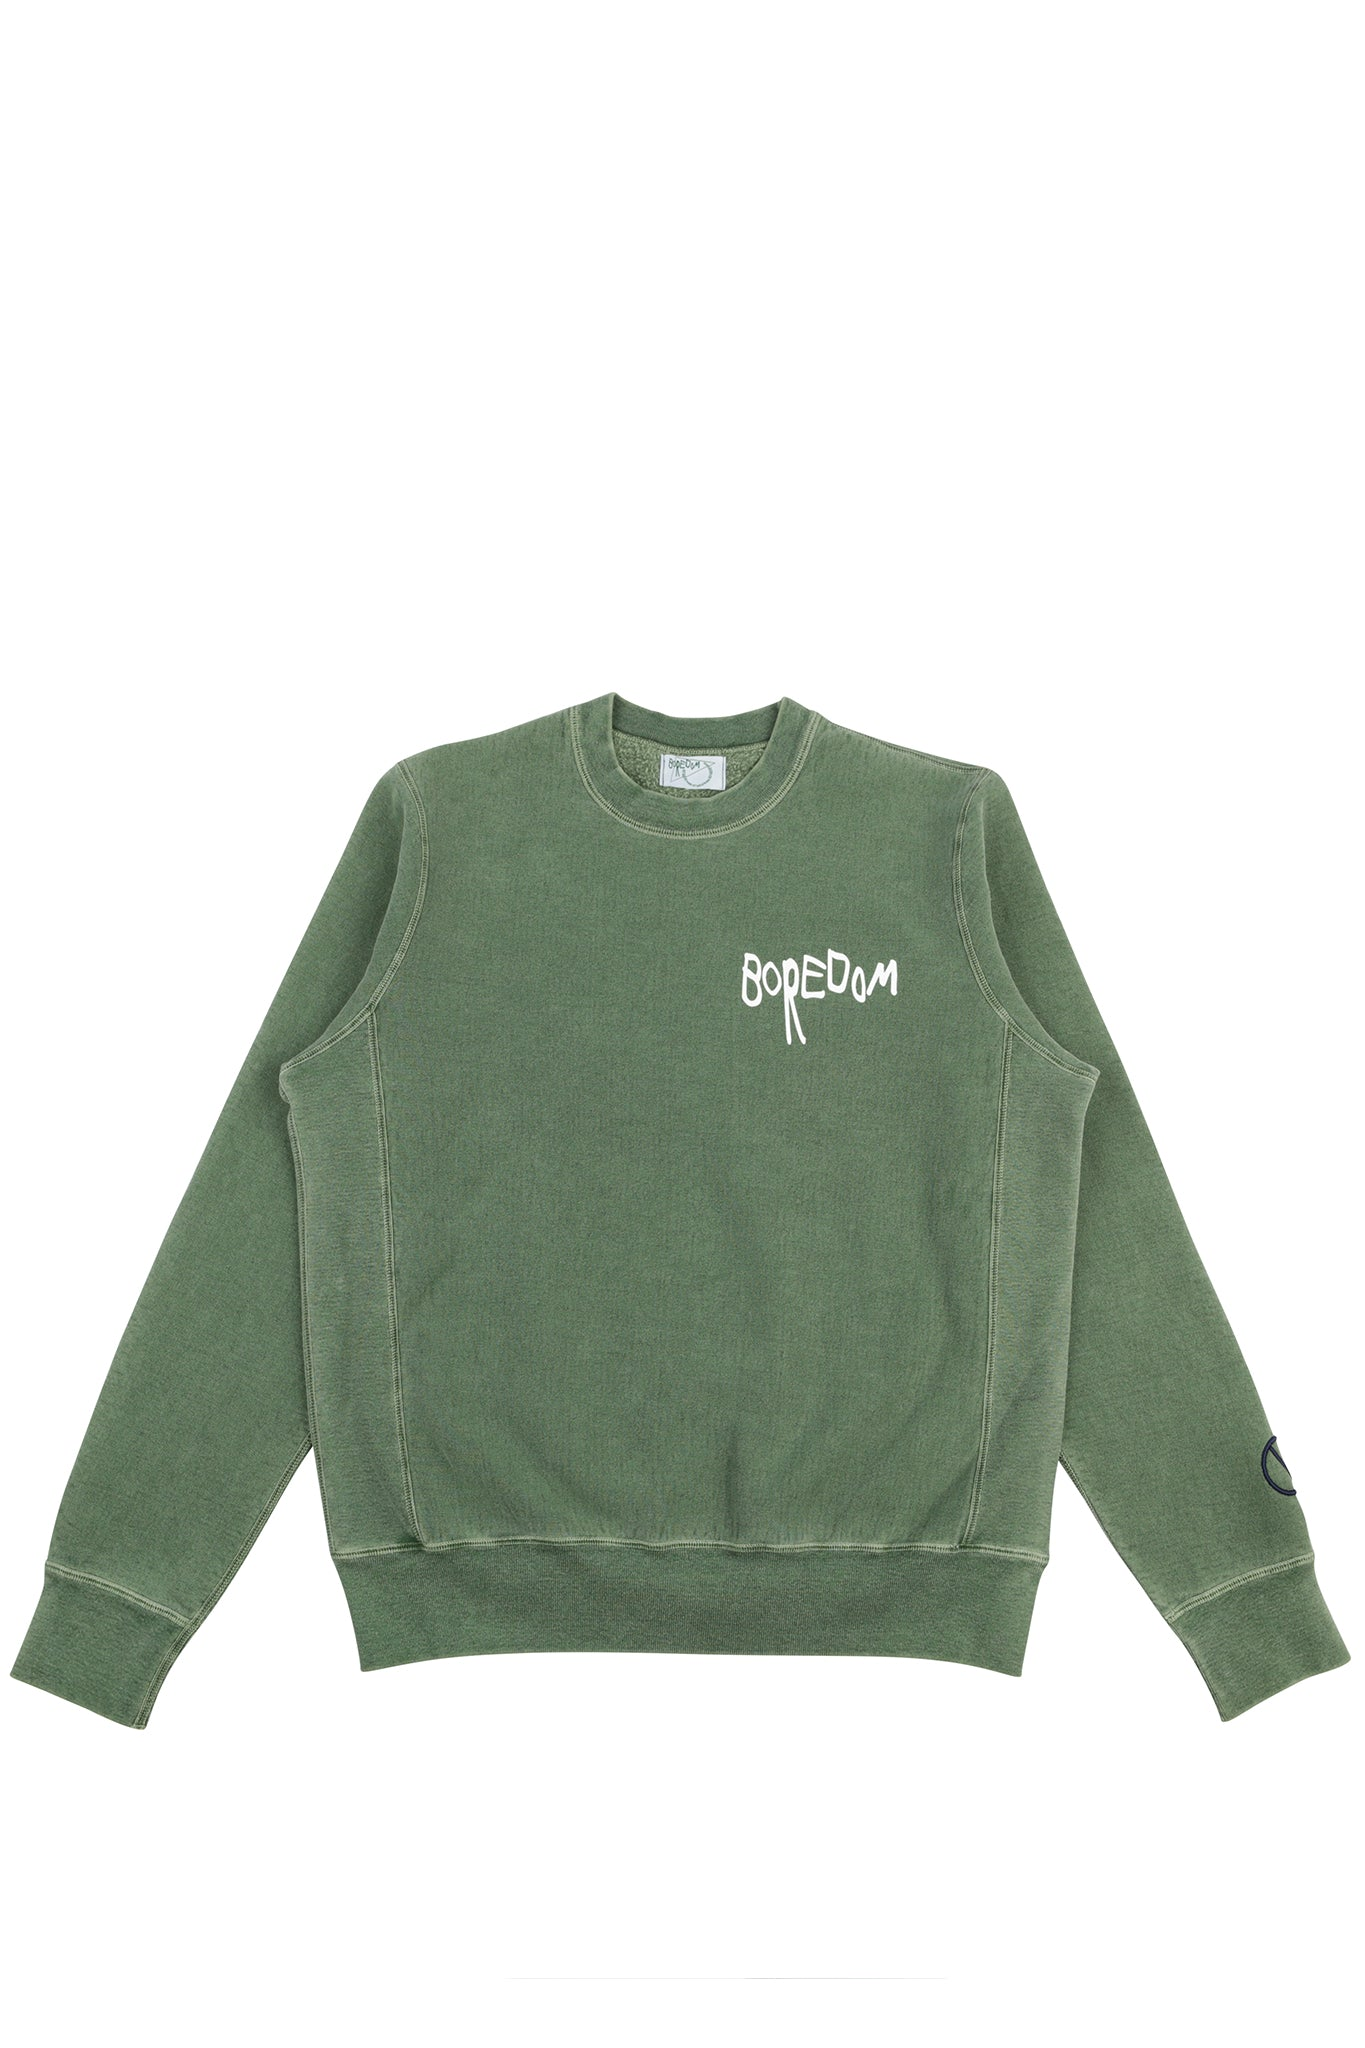 Pigment Dyed Logo Crewneck - Dark Green / White / Navy Blue